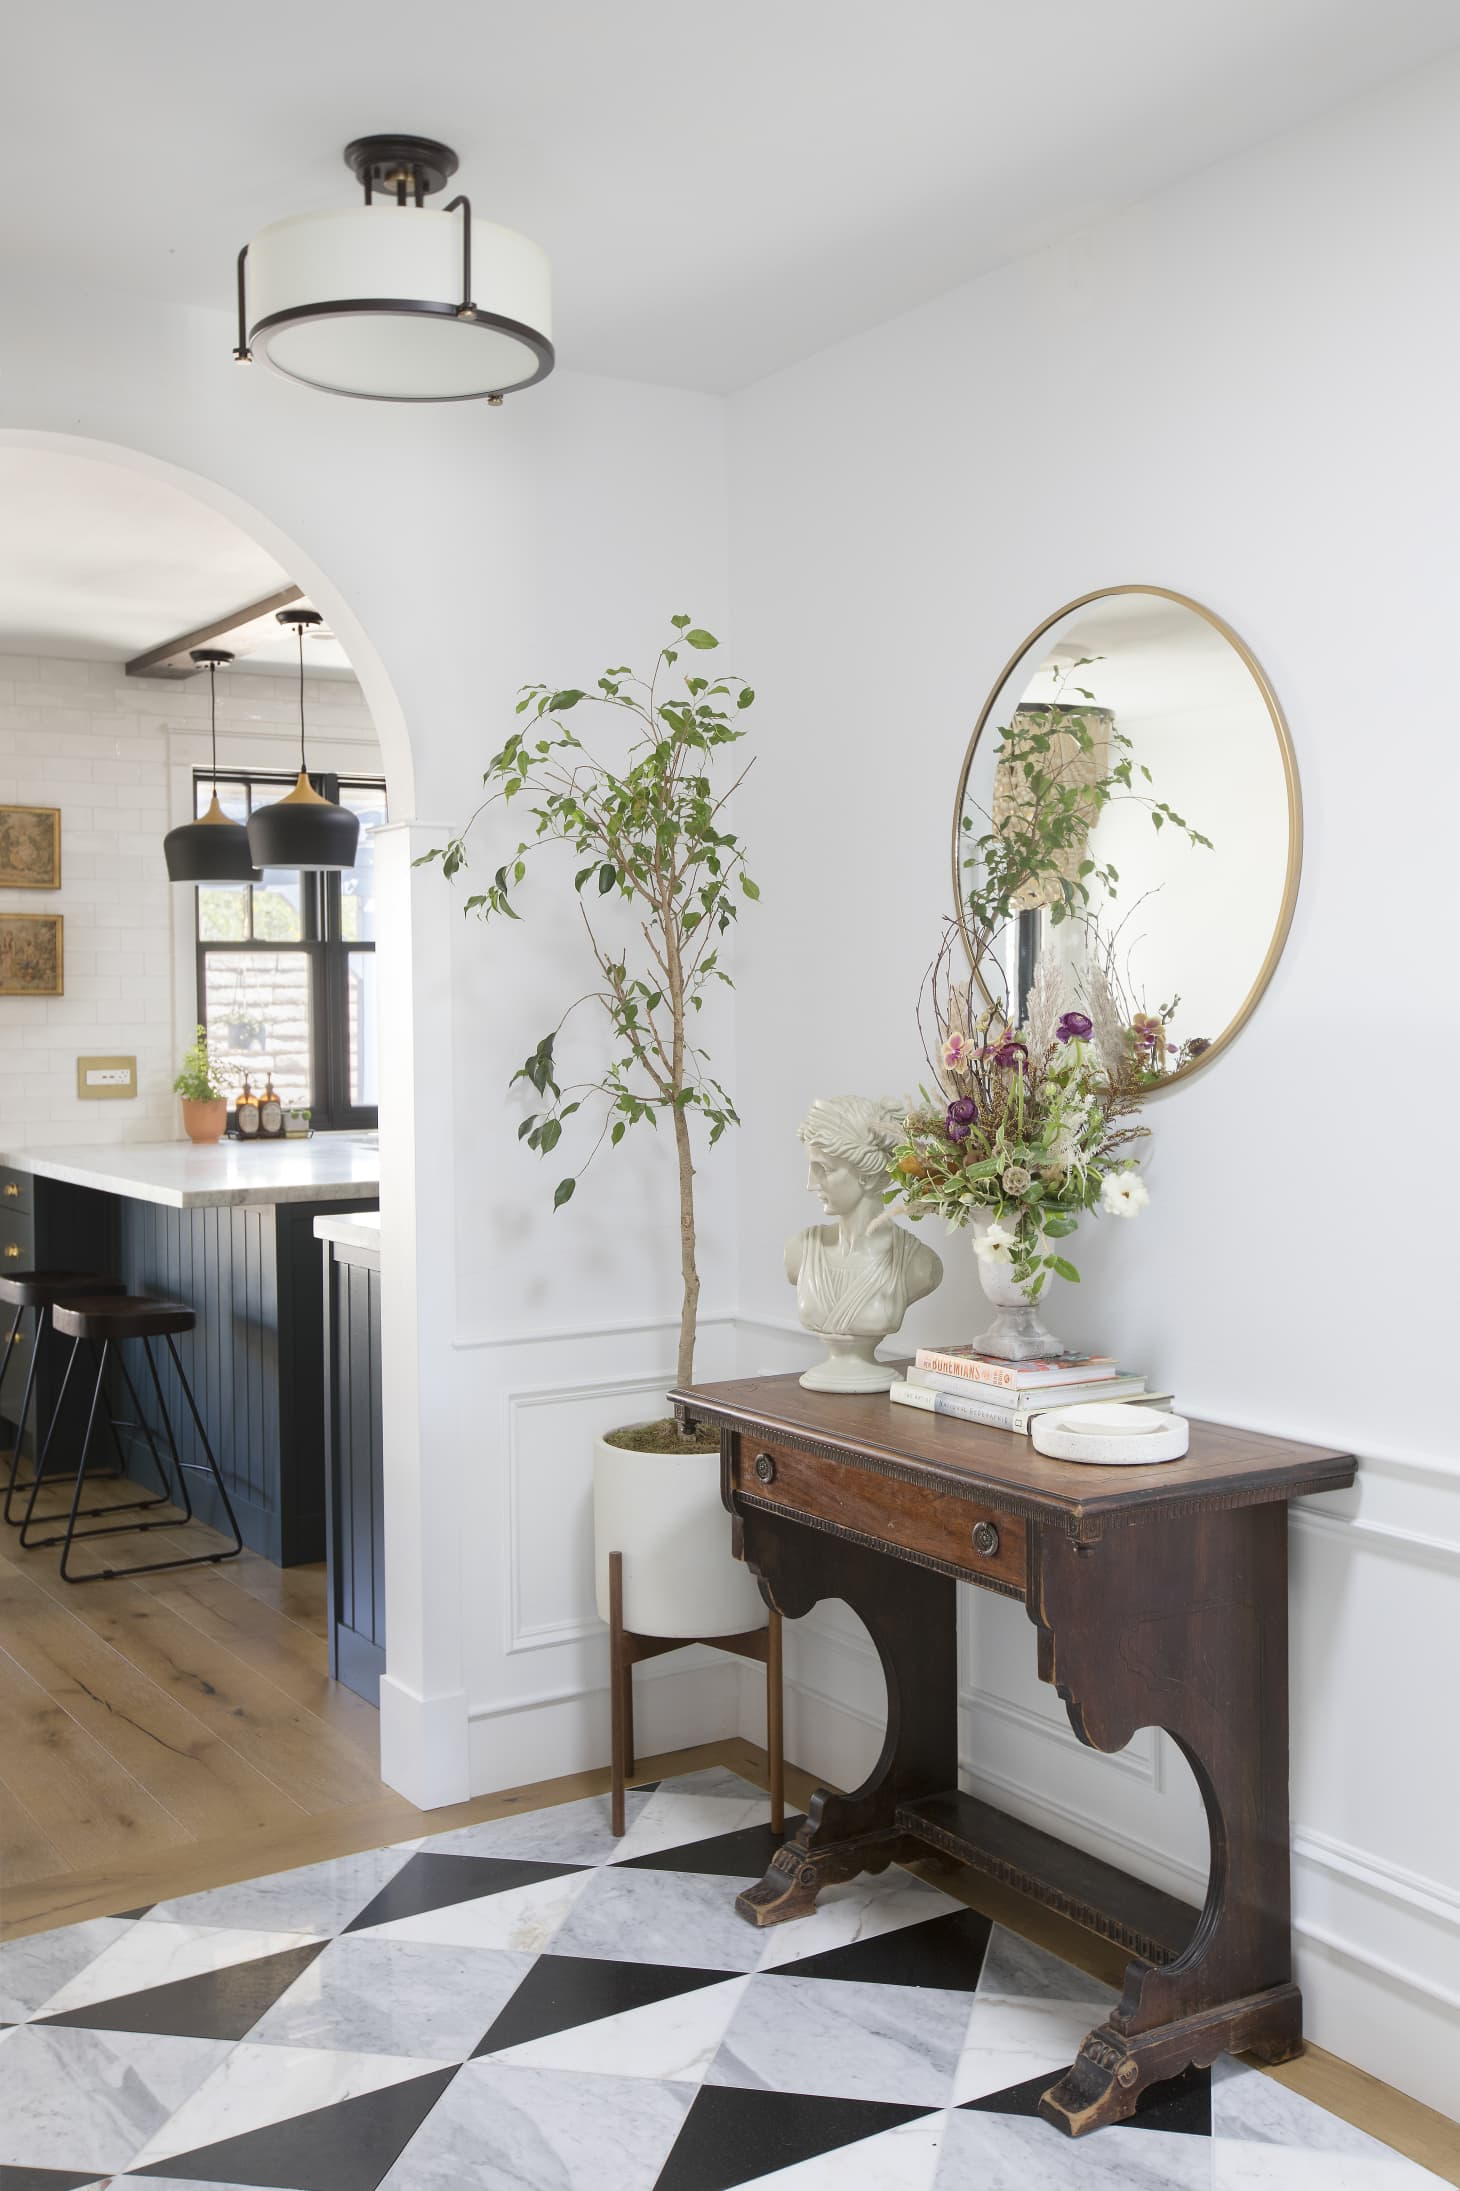 Tract Home Renovation House Tour Photos Apartment Therapy